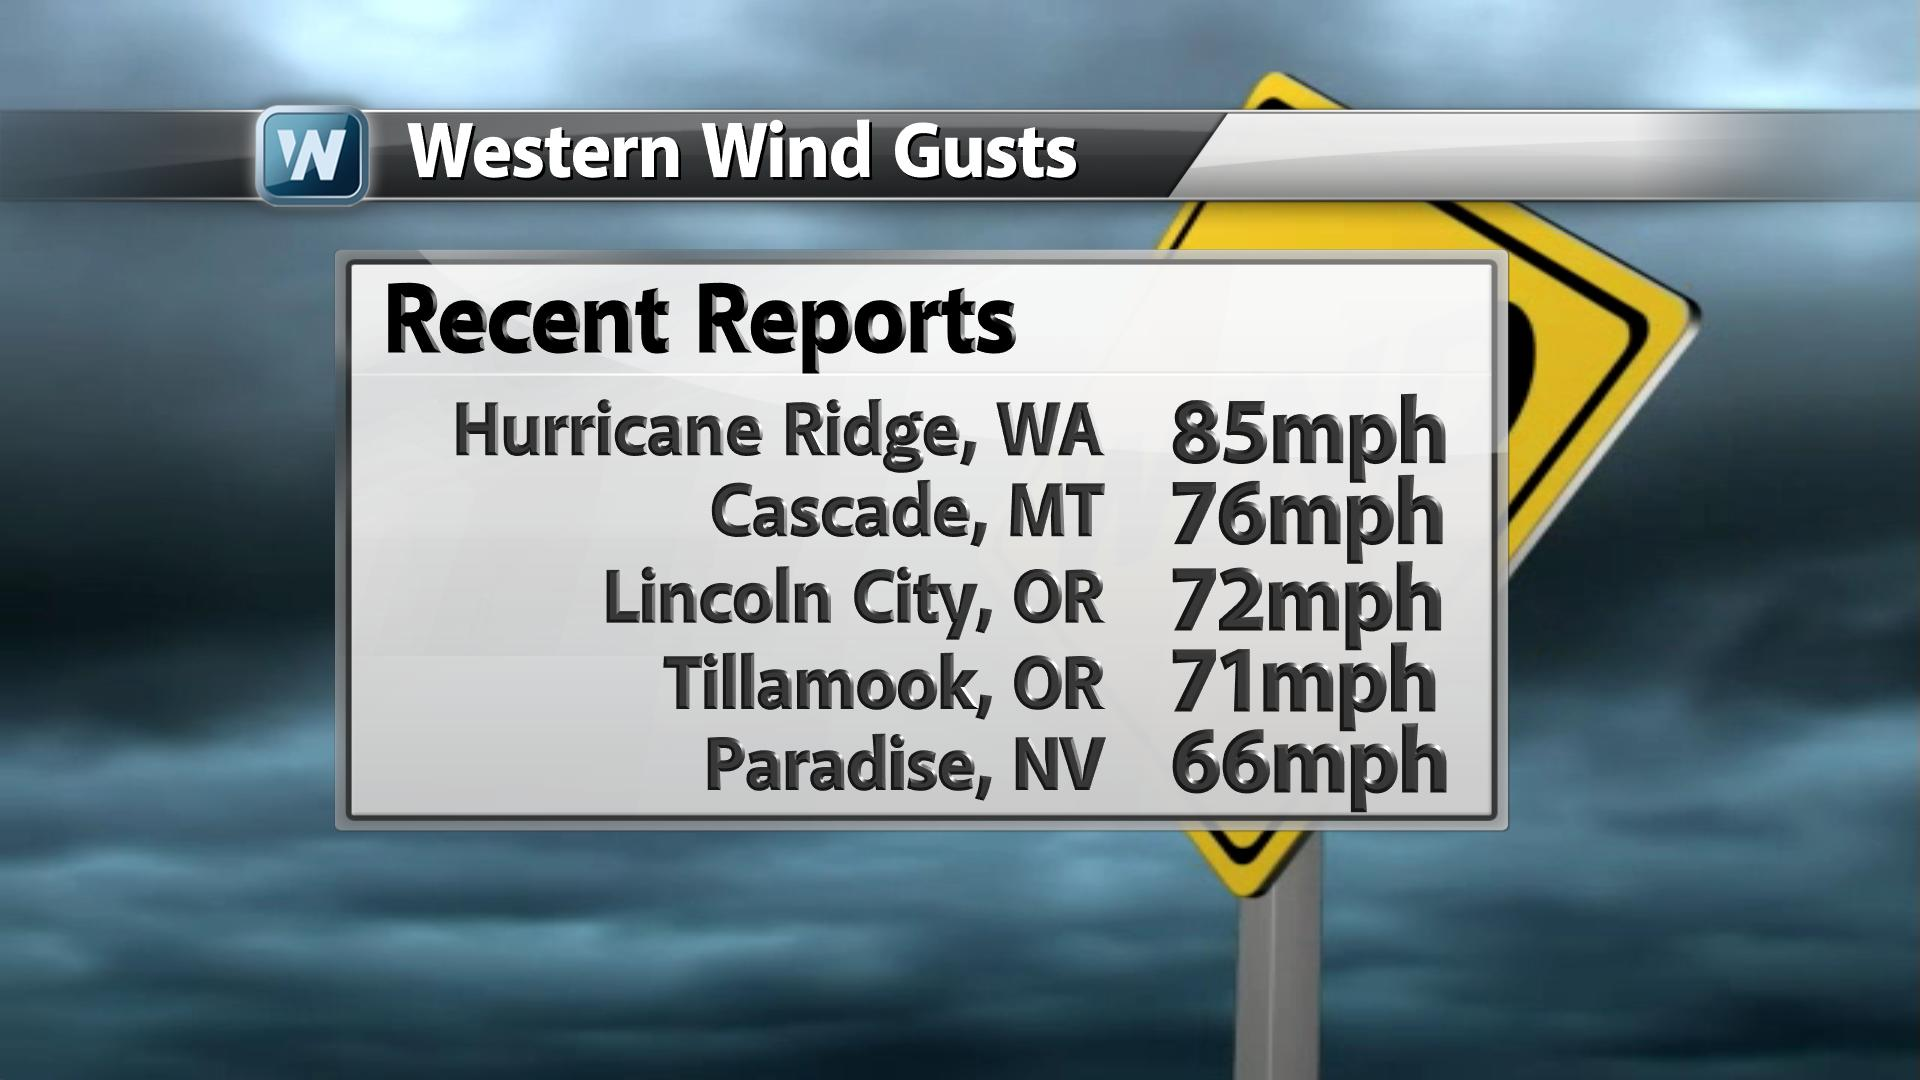 Wind Gusts Through Monday Morning